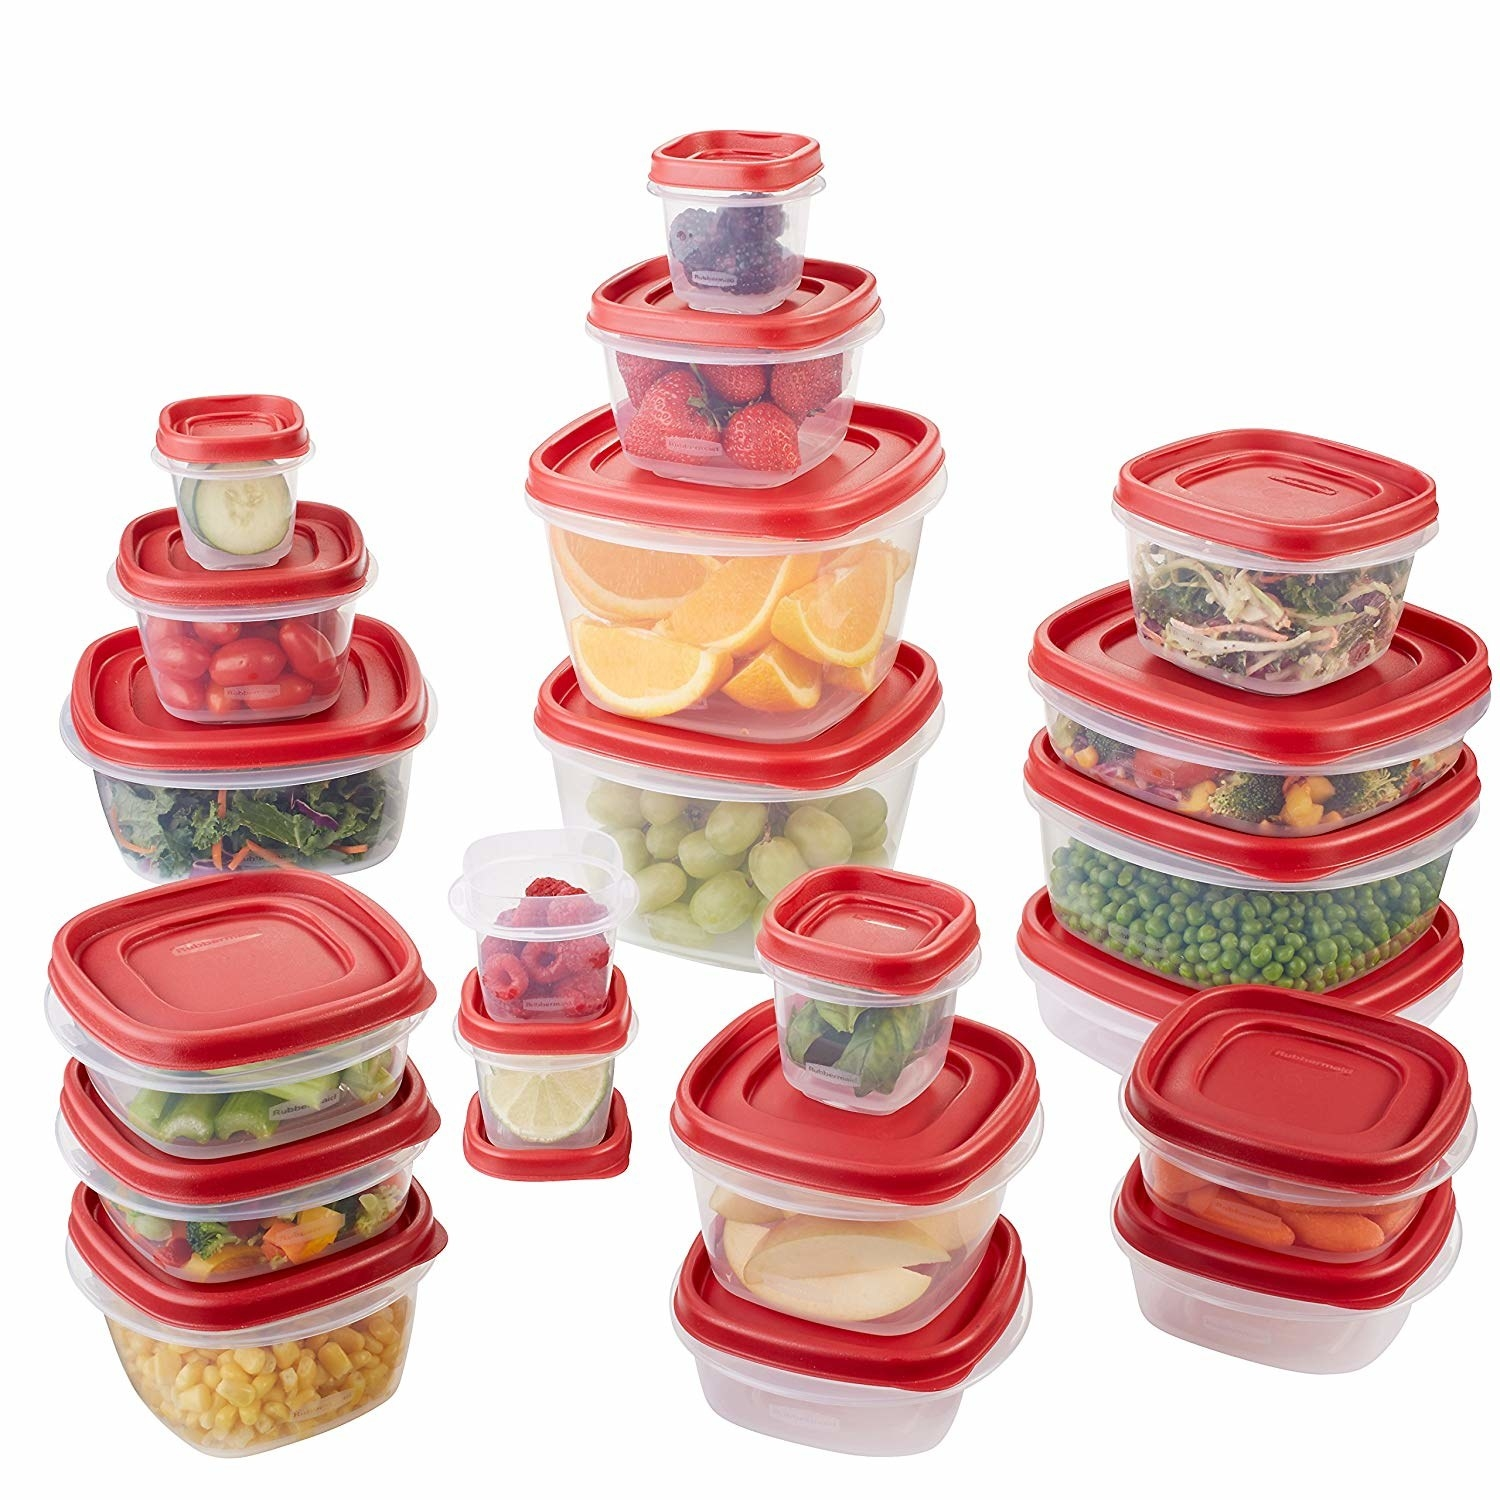 The set of clear and red containers in multiple sizes with food in them